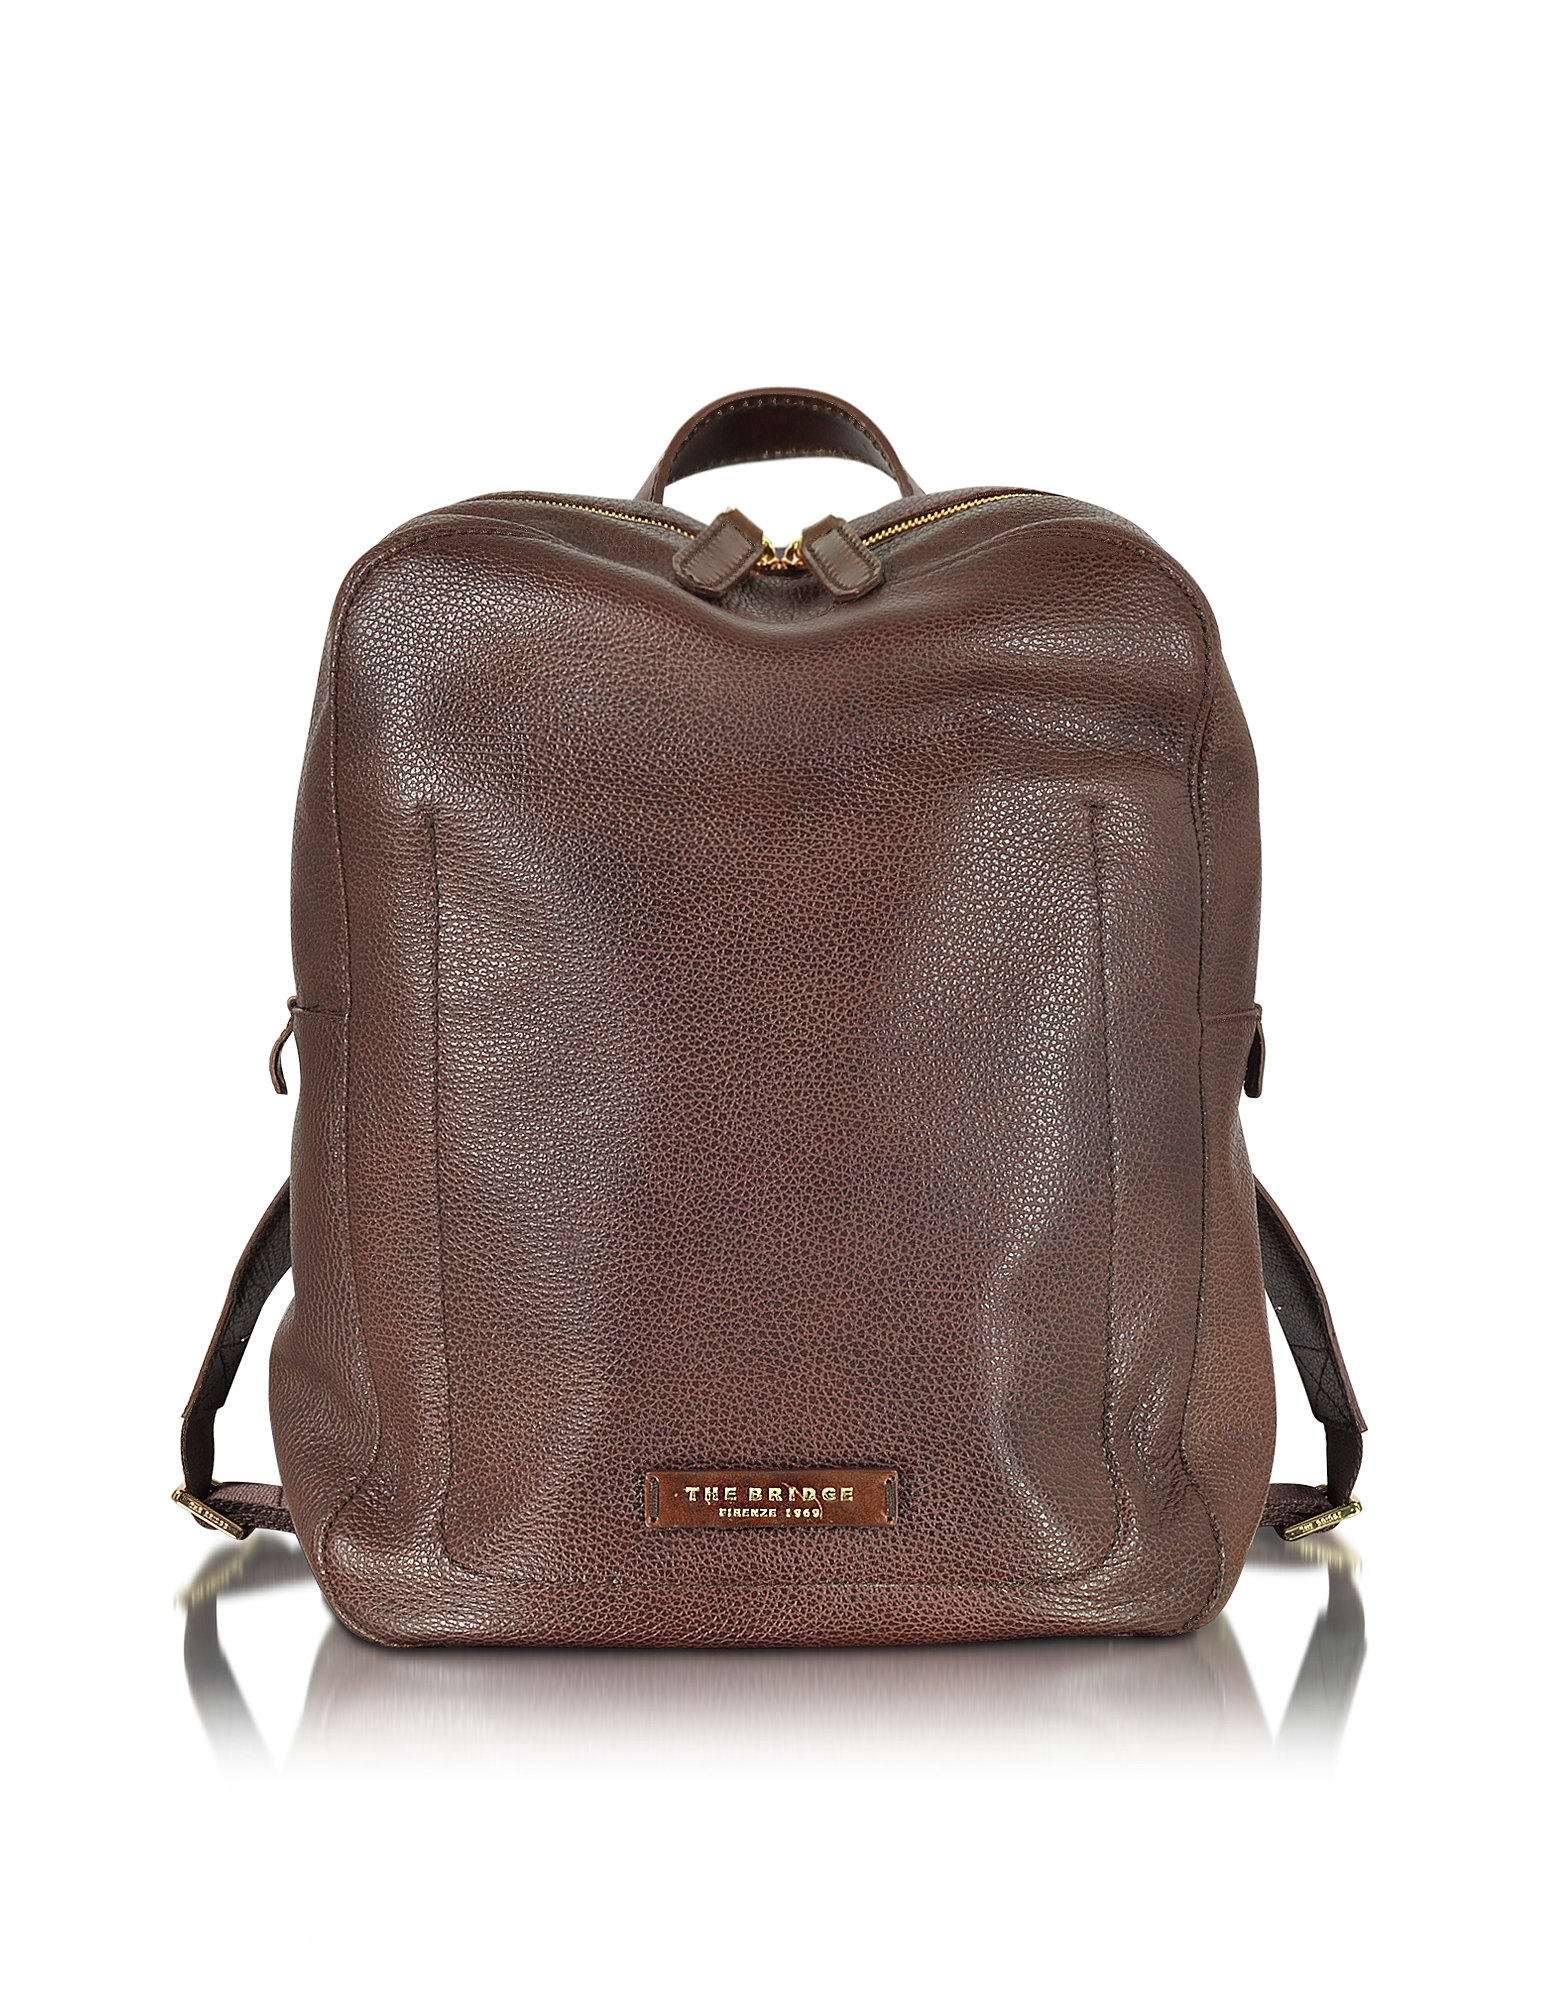 Image of The Bridge Designer Backpacks, Plume Dark Brown Leather Men's Backpack